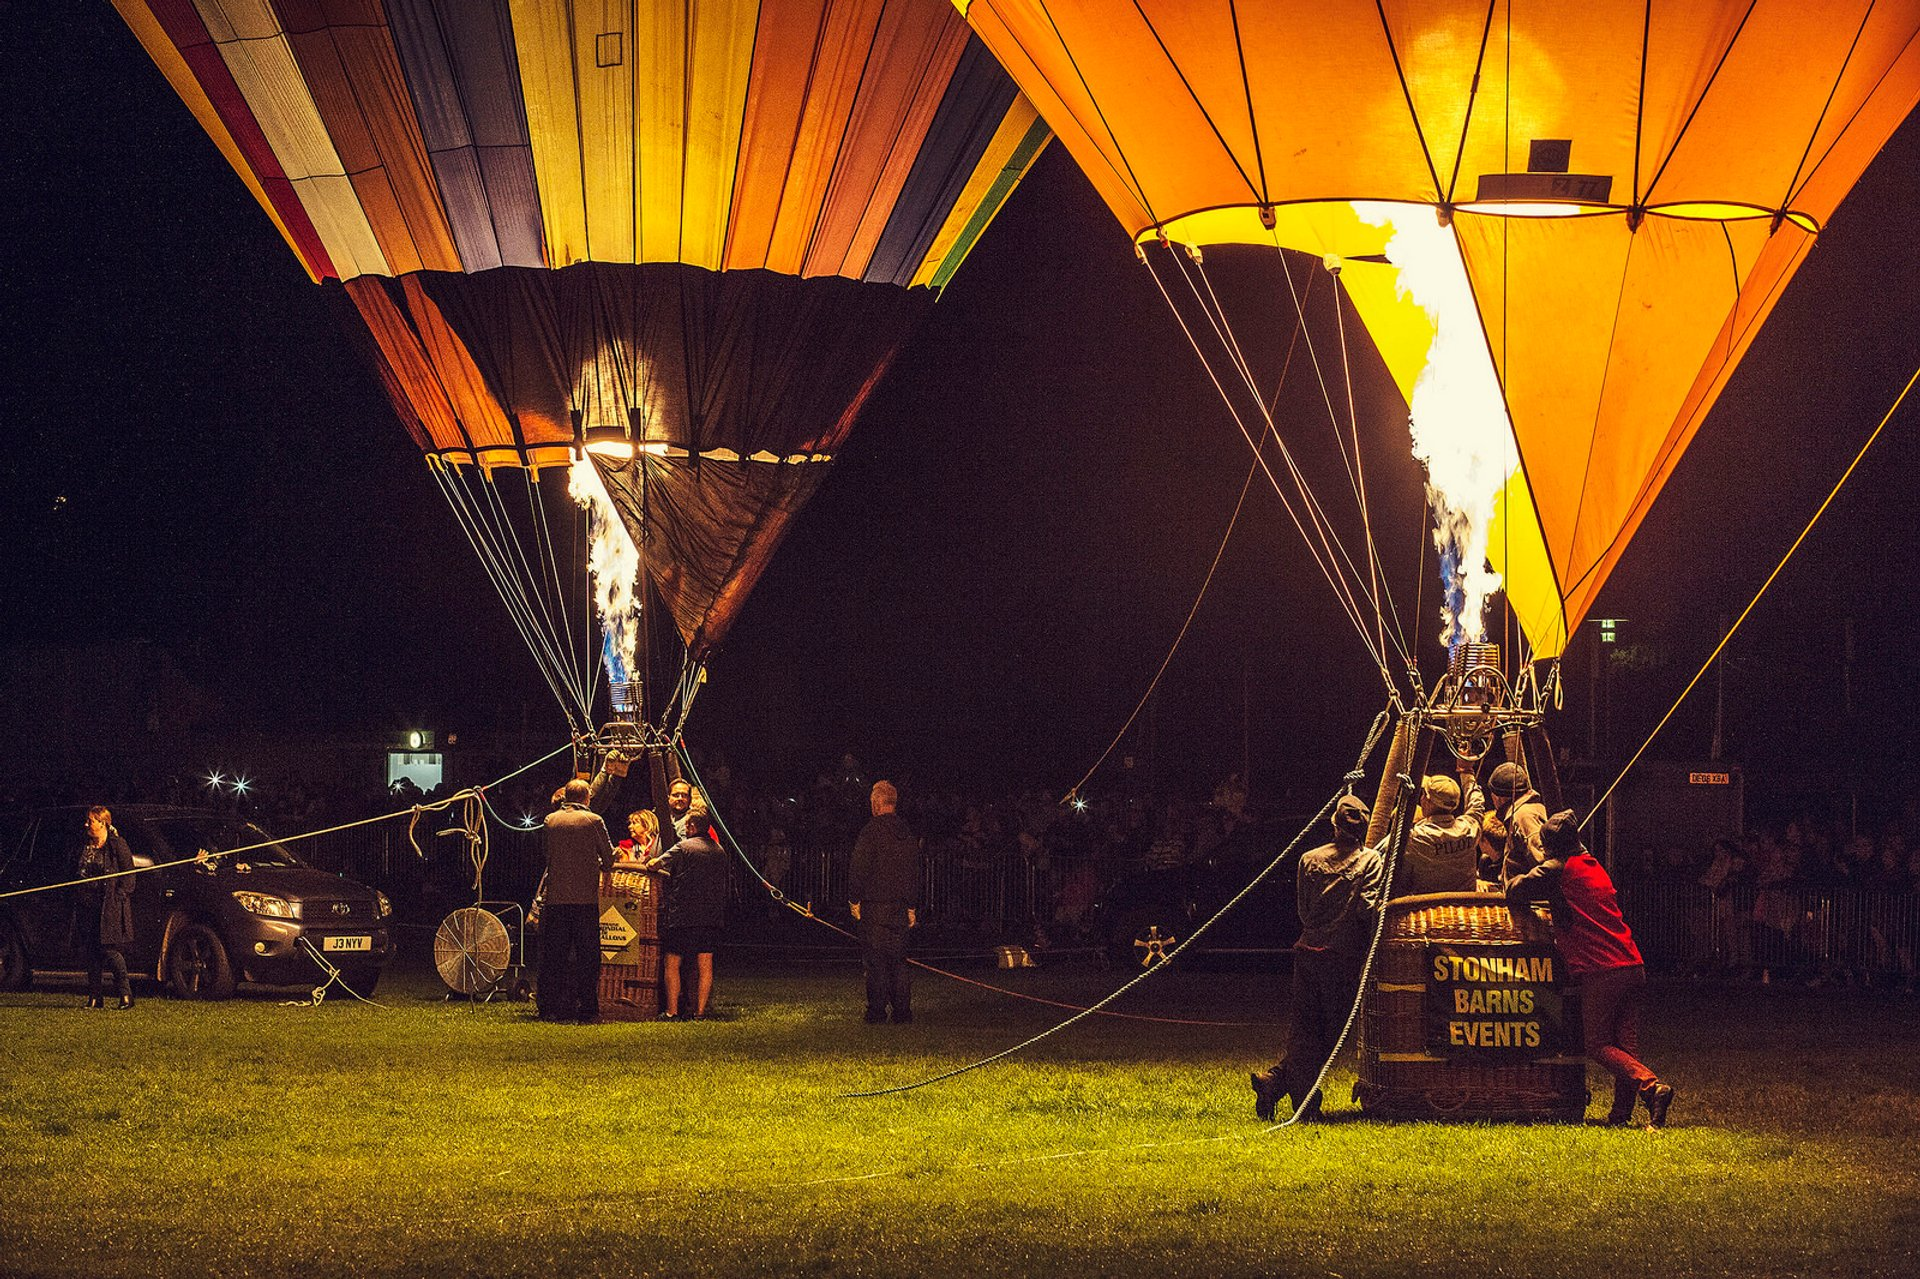 Balloon Carnival in Oswestry in England - Best Season 2019